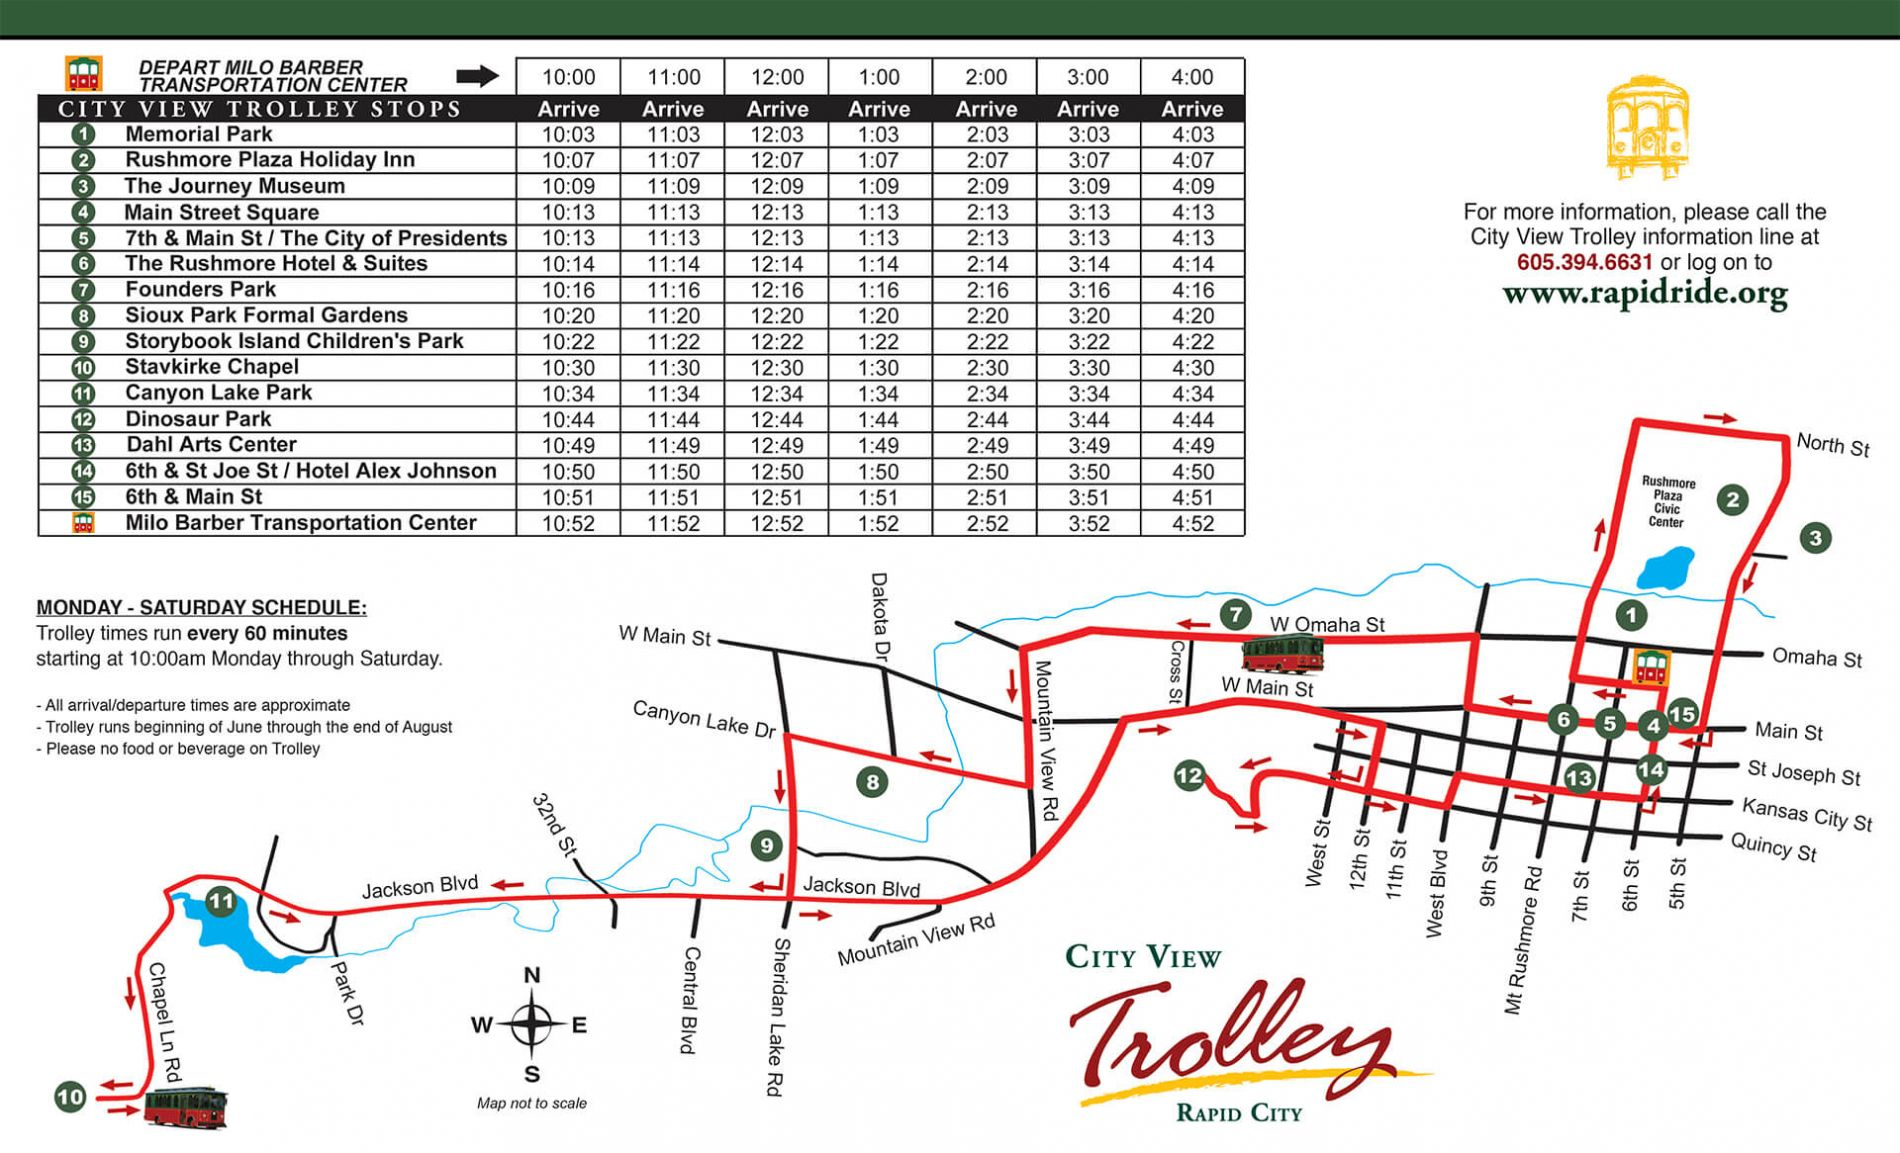 City View Trolley Map